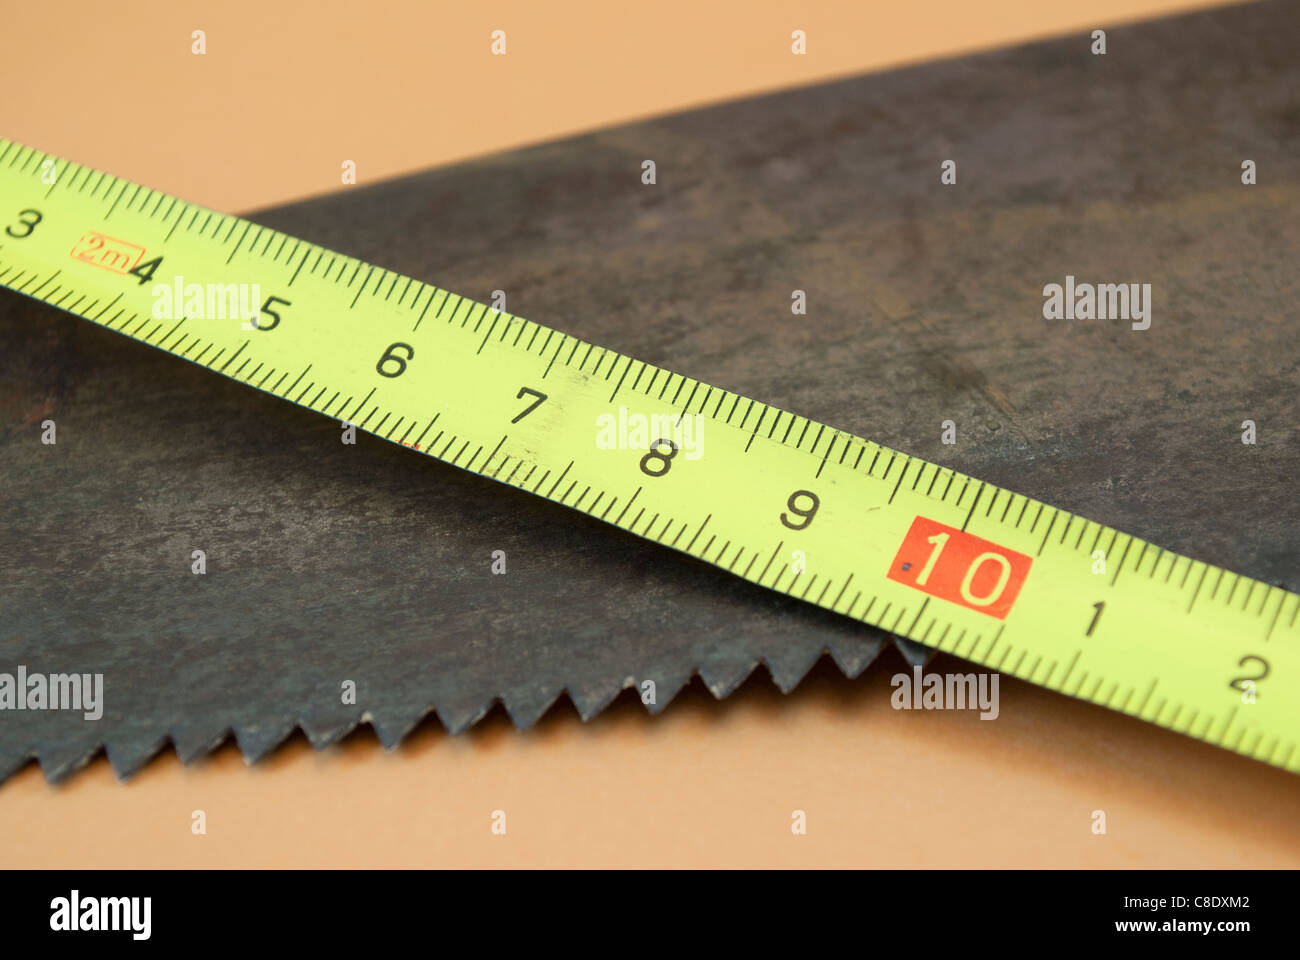 meter and hand saw - Stock Image